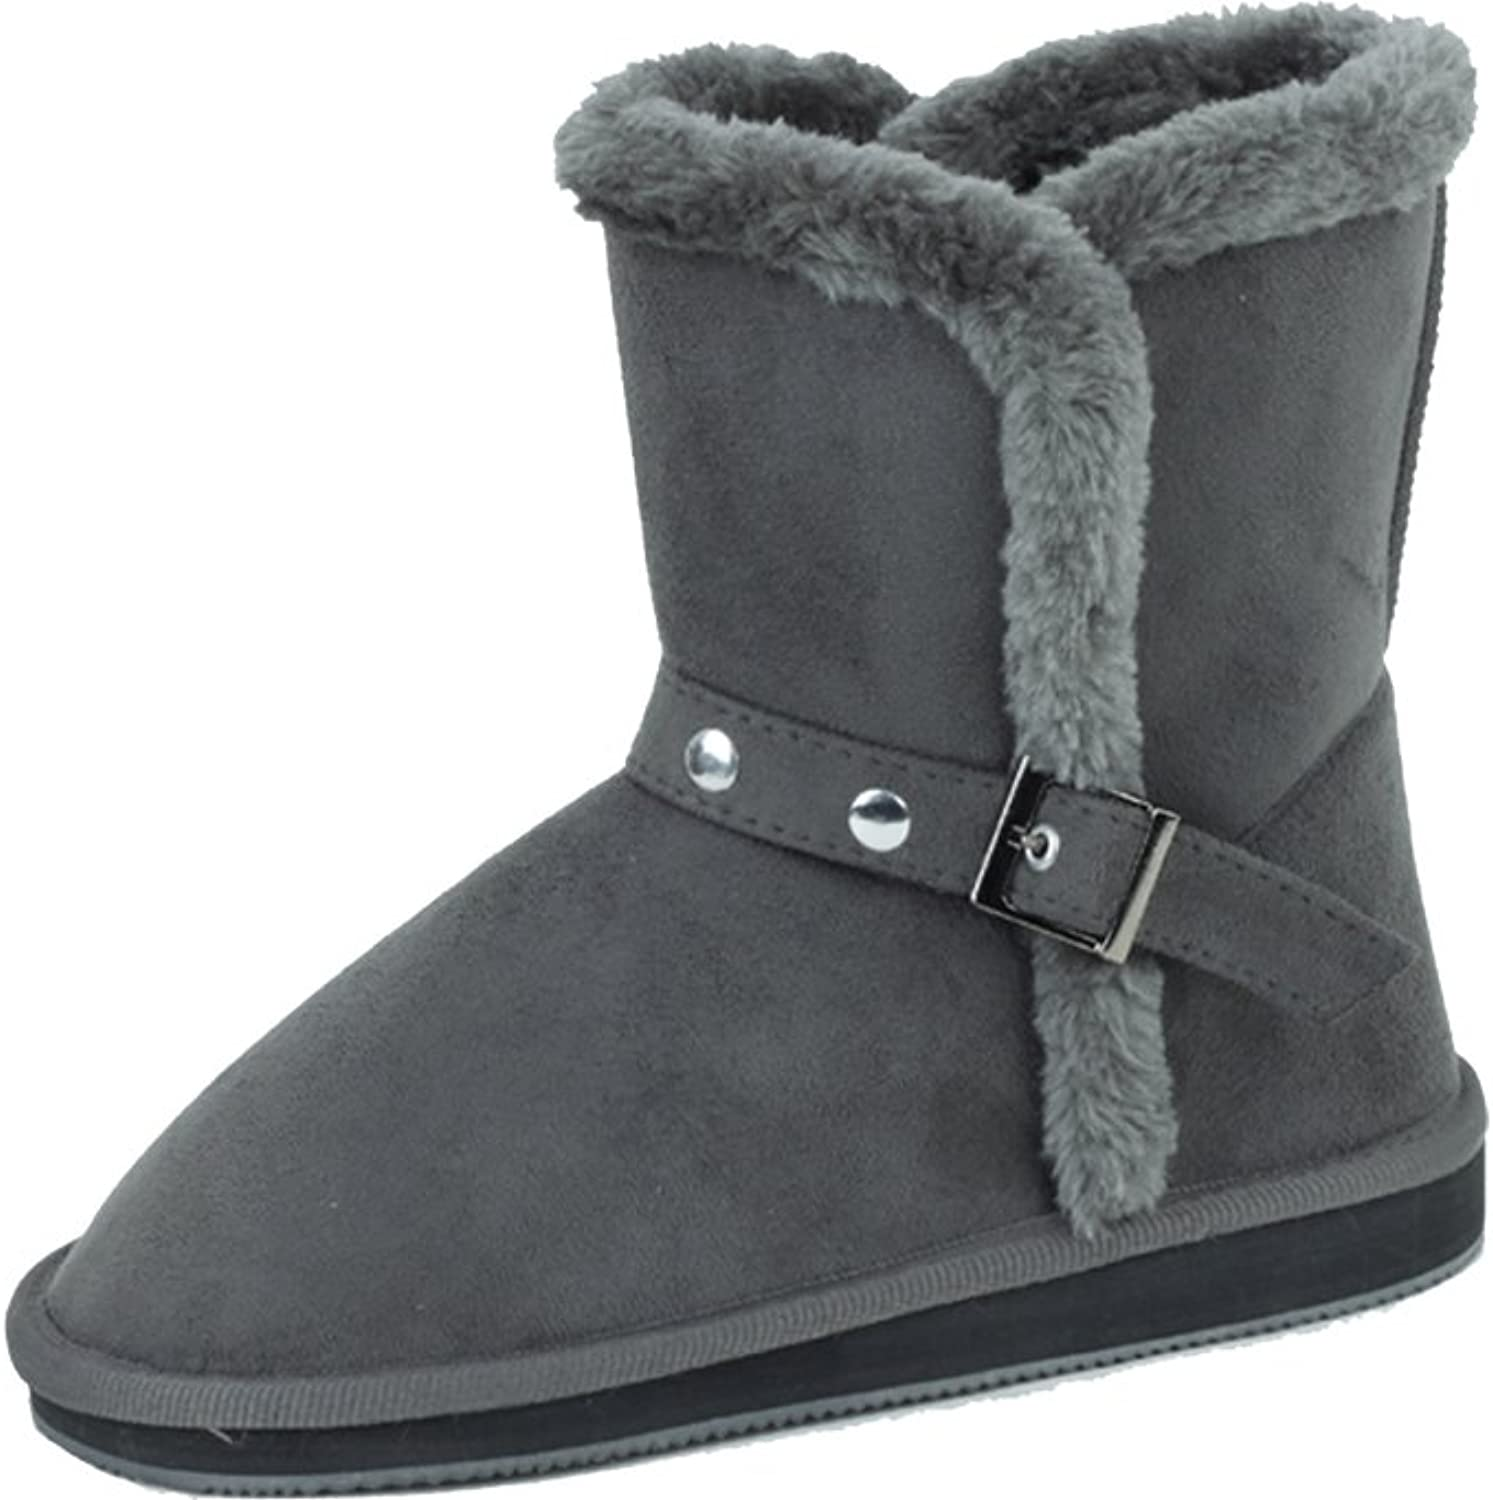 Sunville New Women's Short Grey Faux Suede Boots Size 11